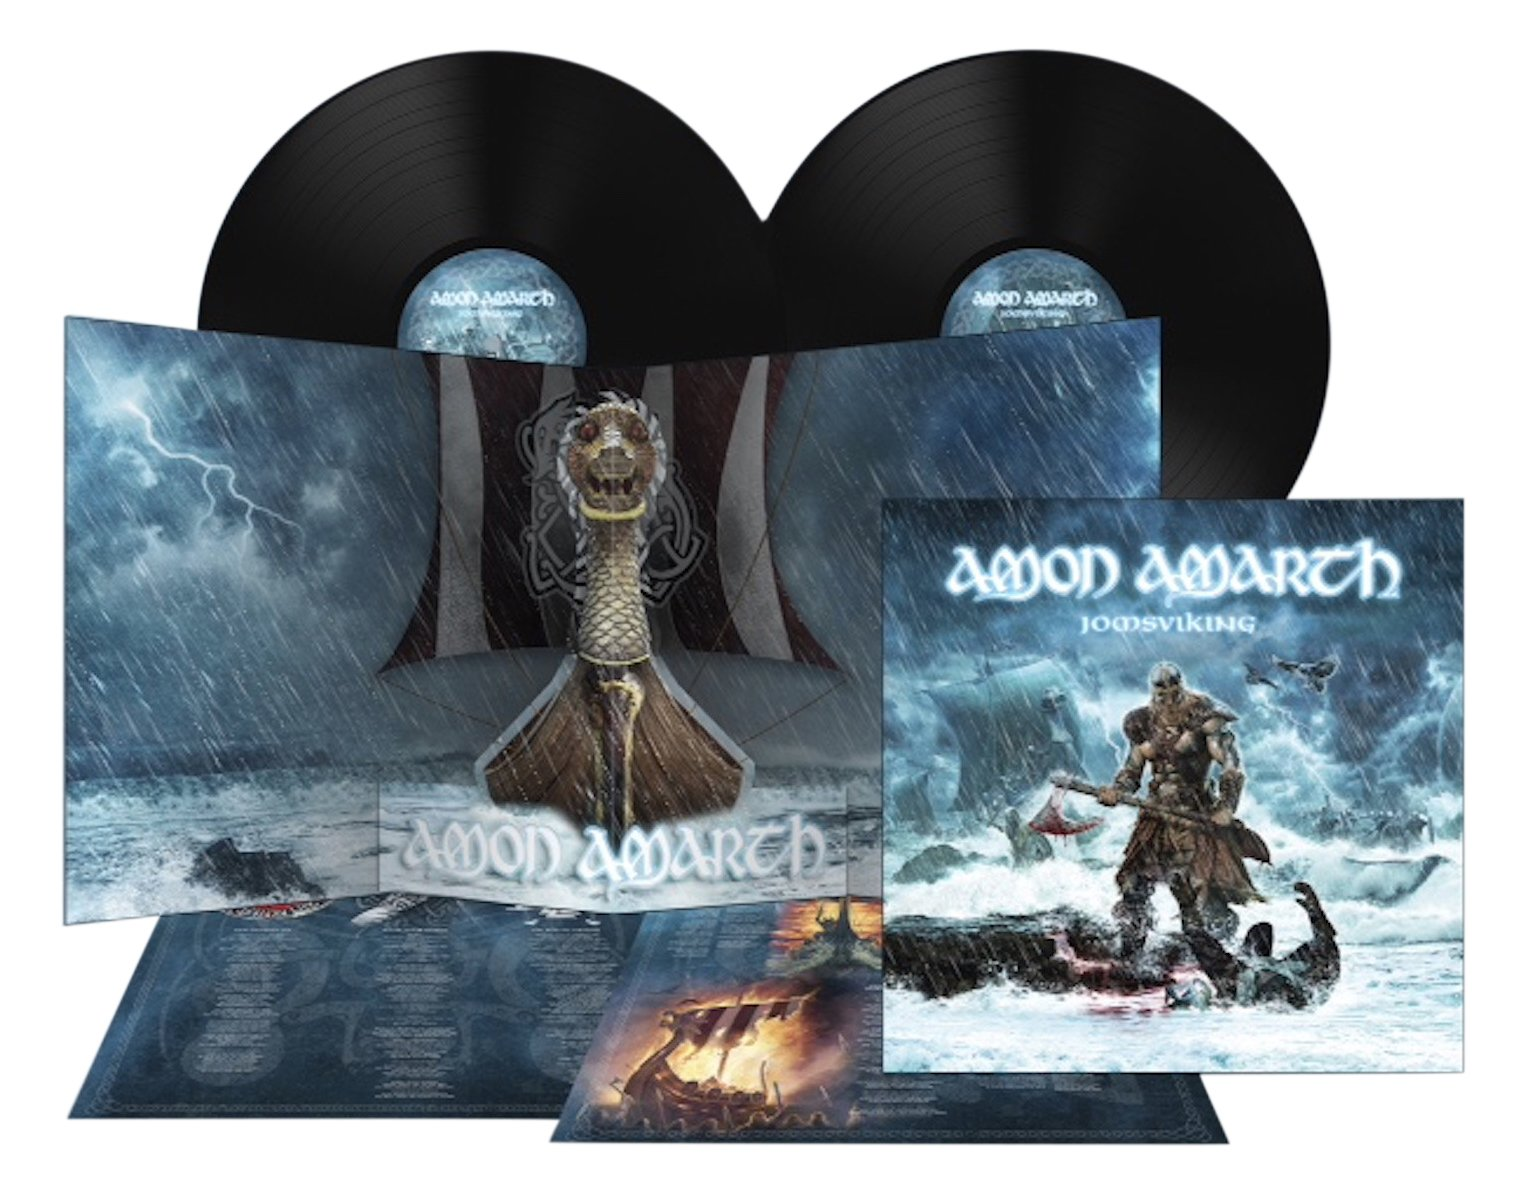 Vinilo : Amon Amarth - Jomsviking (Gatefold LP Jacket, 2 Disc)